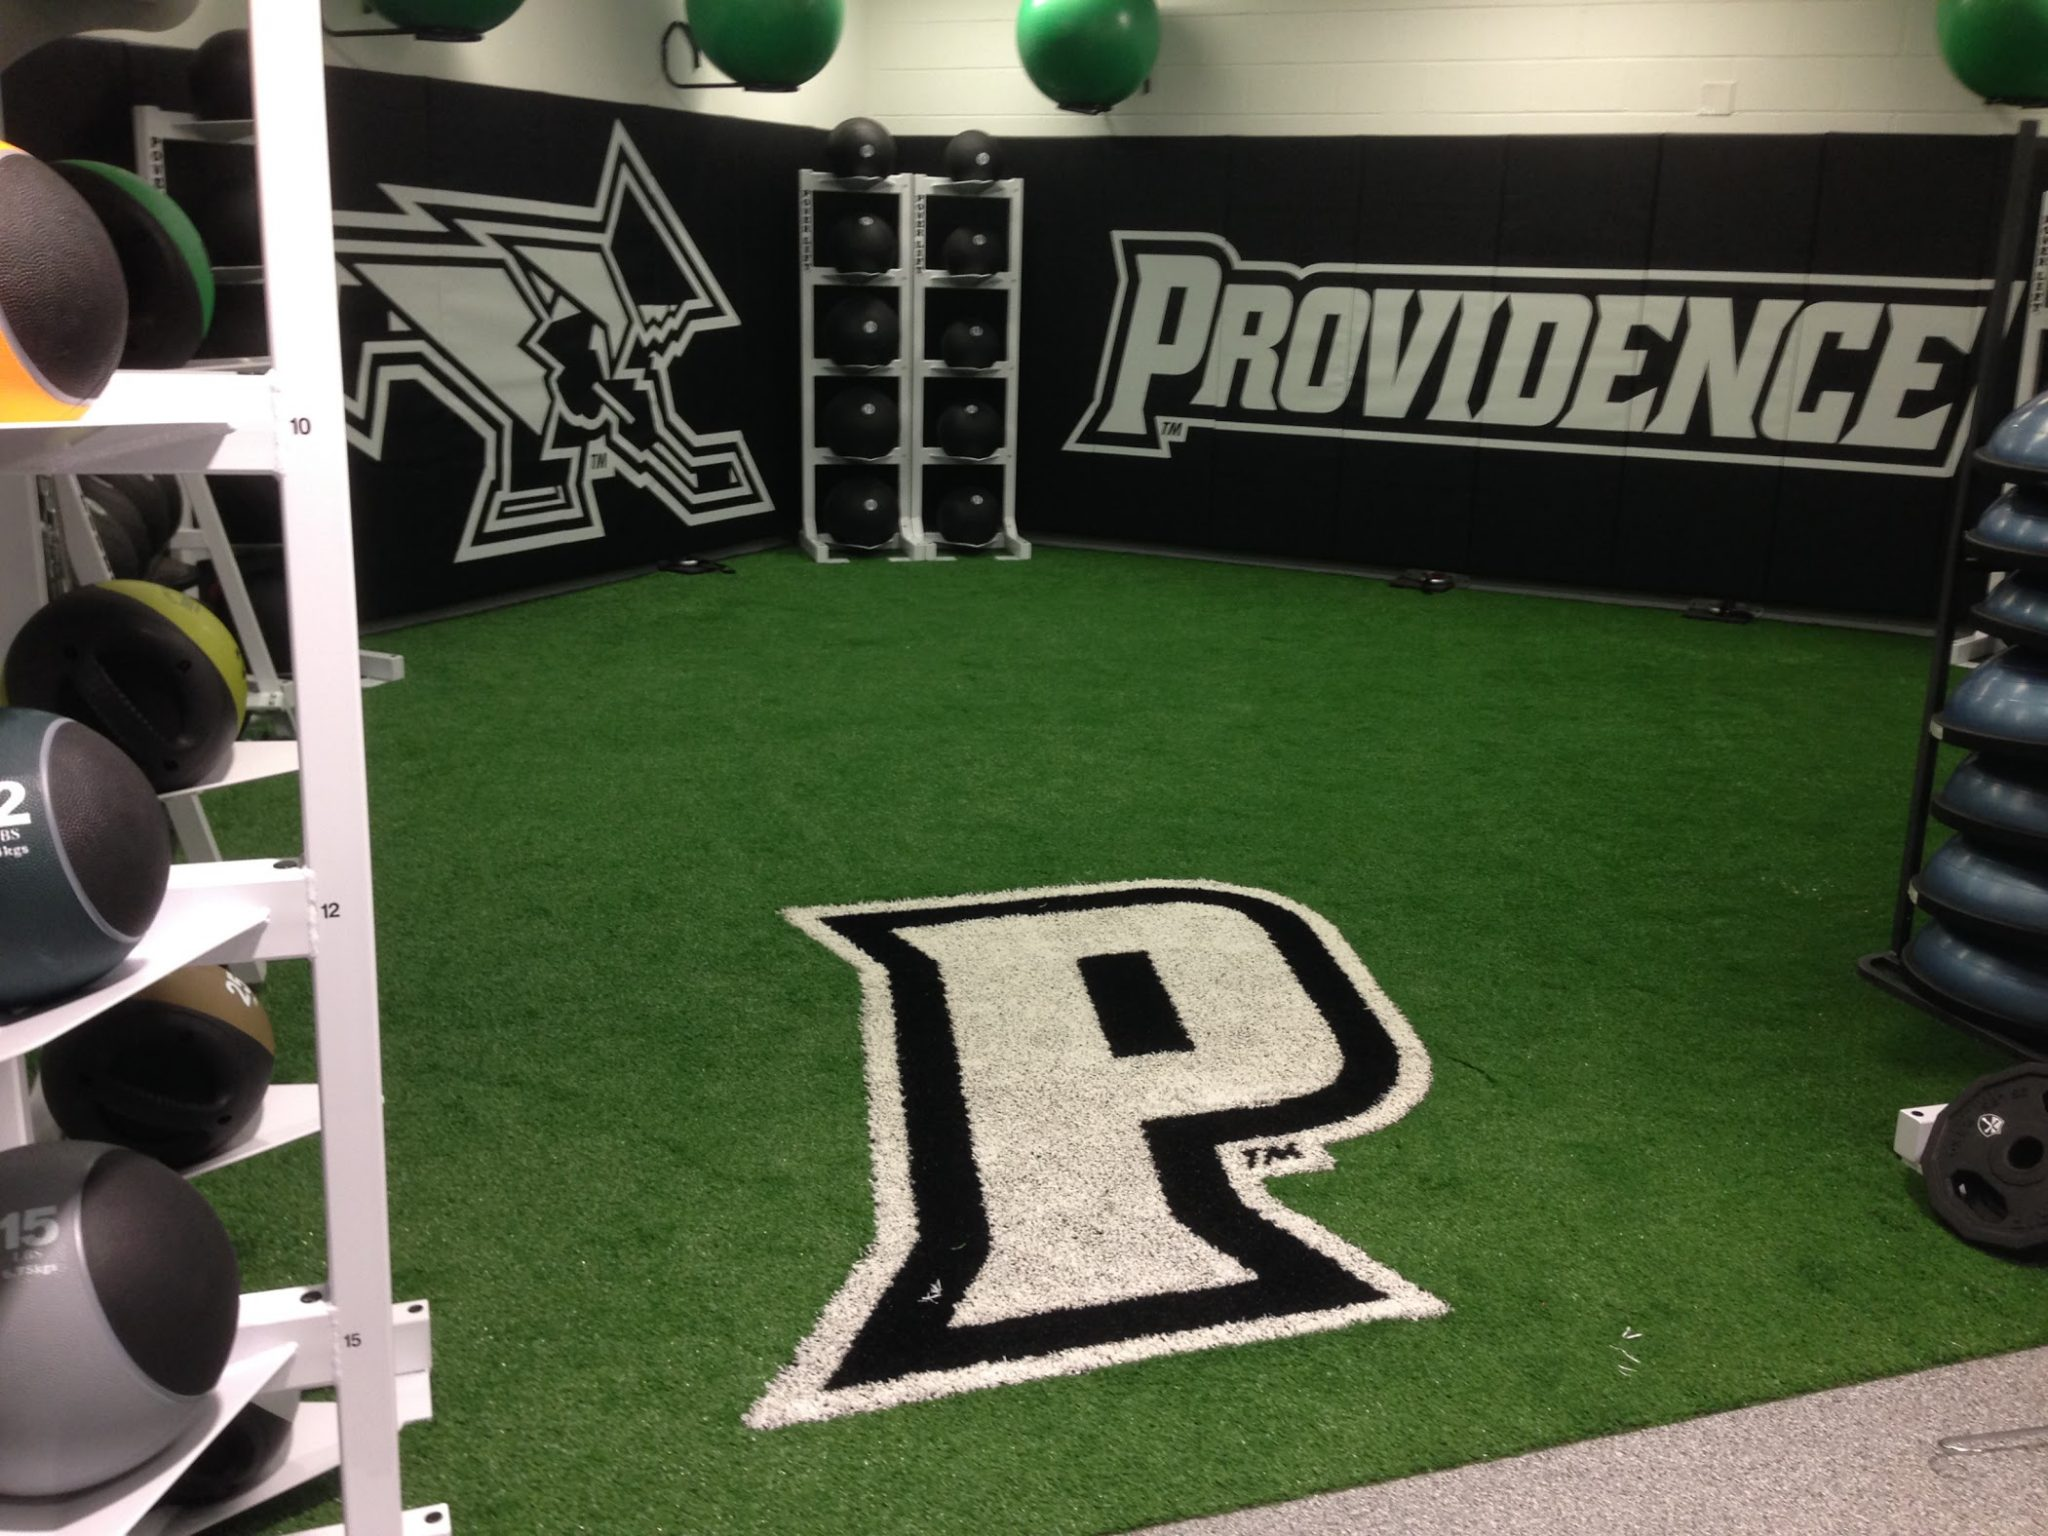 Providence College